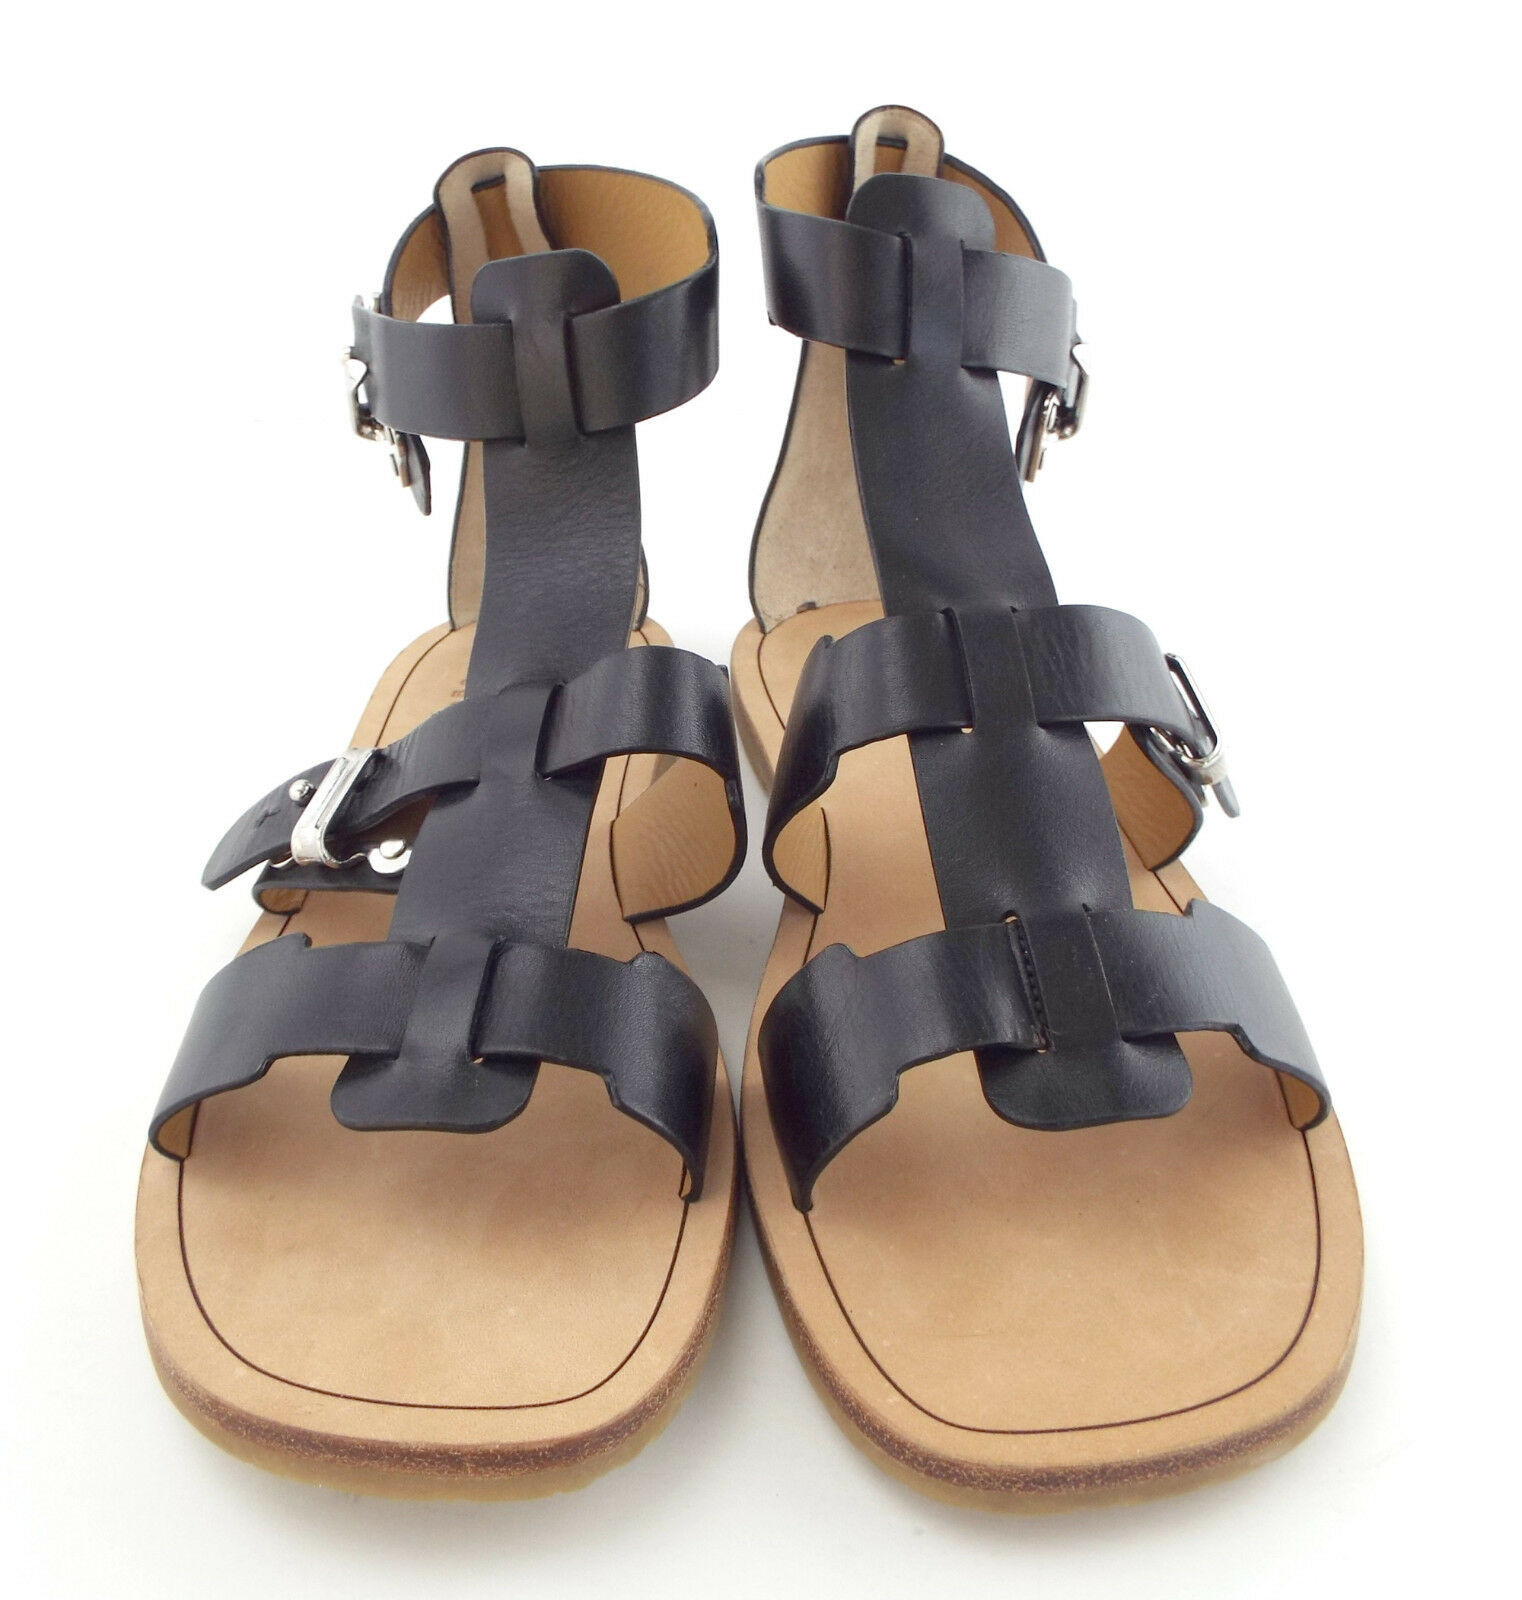 New MARC JACOBS Size 7 Black Gladiator Style Buckled Up Sandals Shoes 37 - $119.00